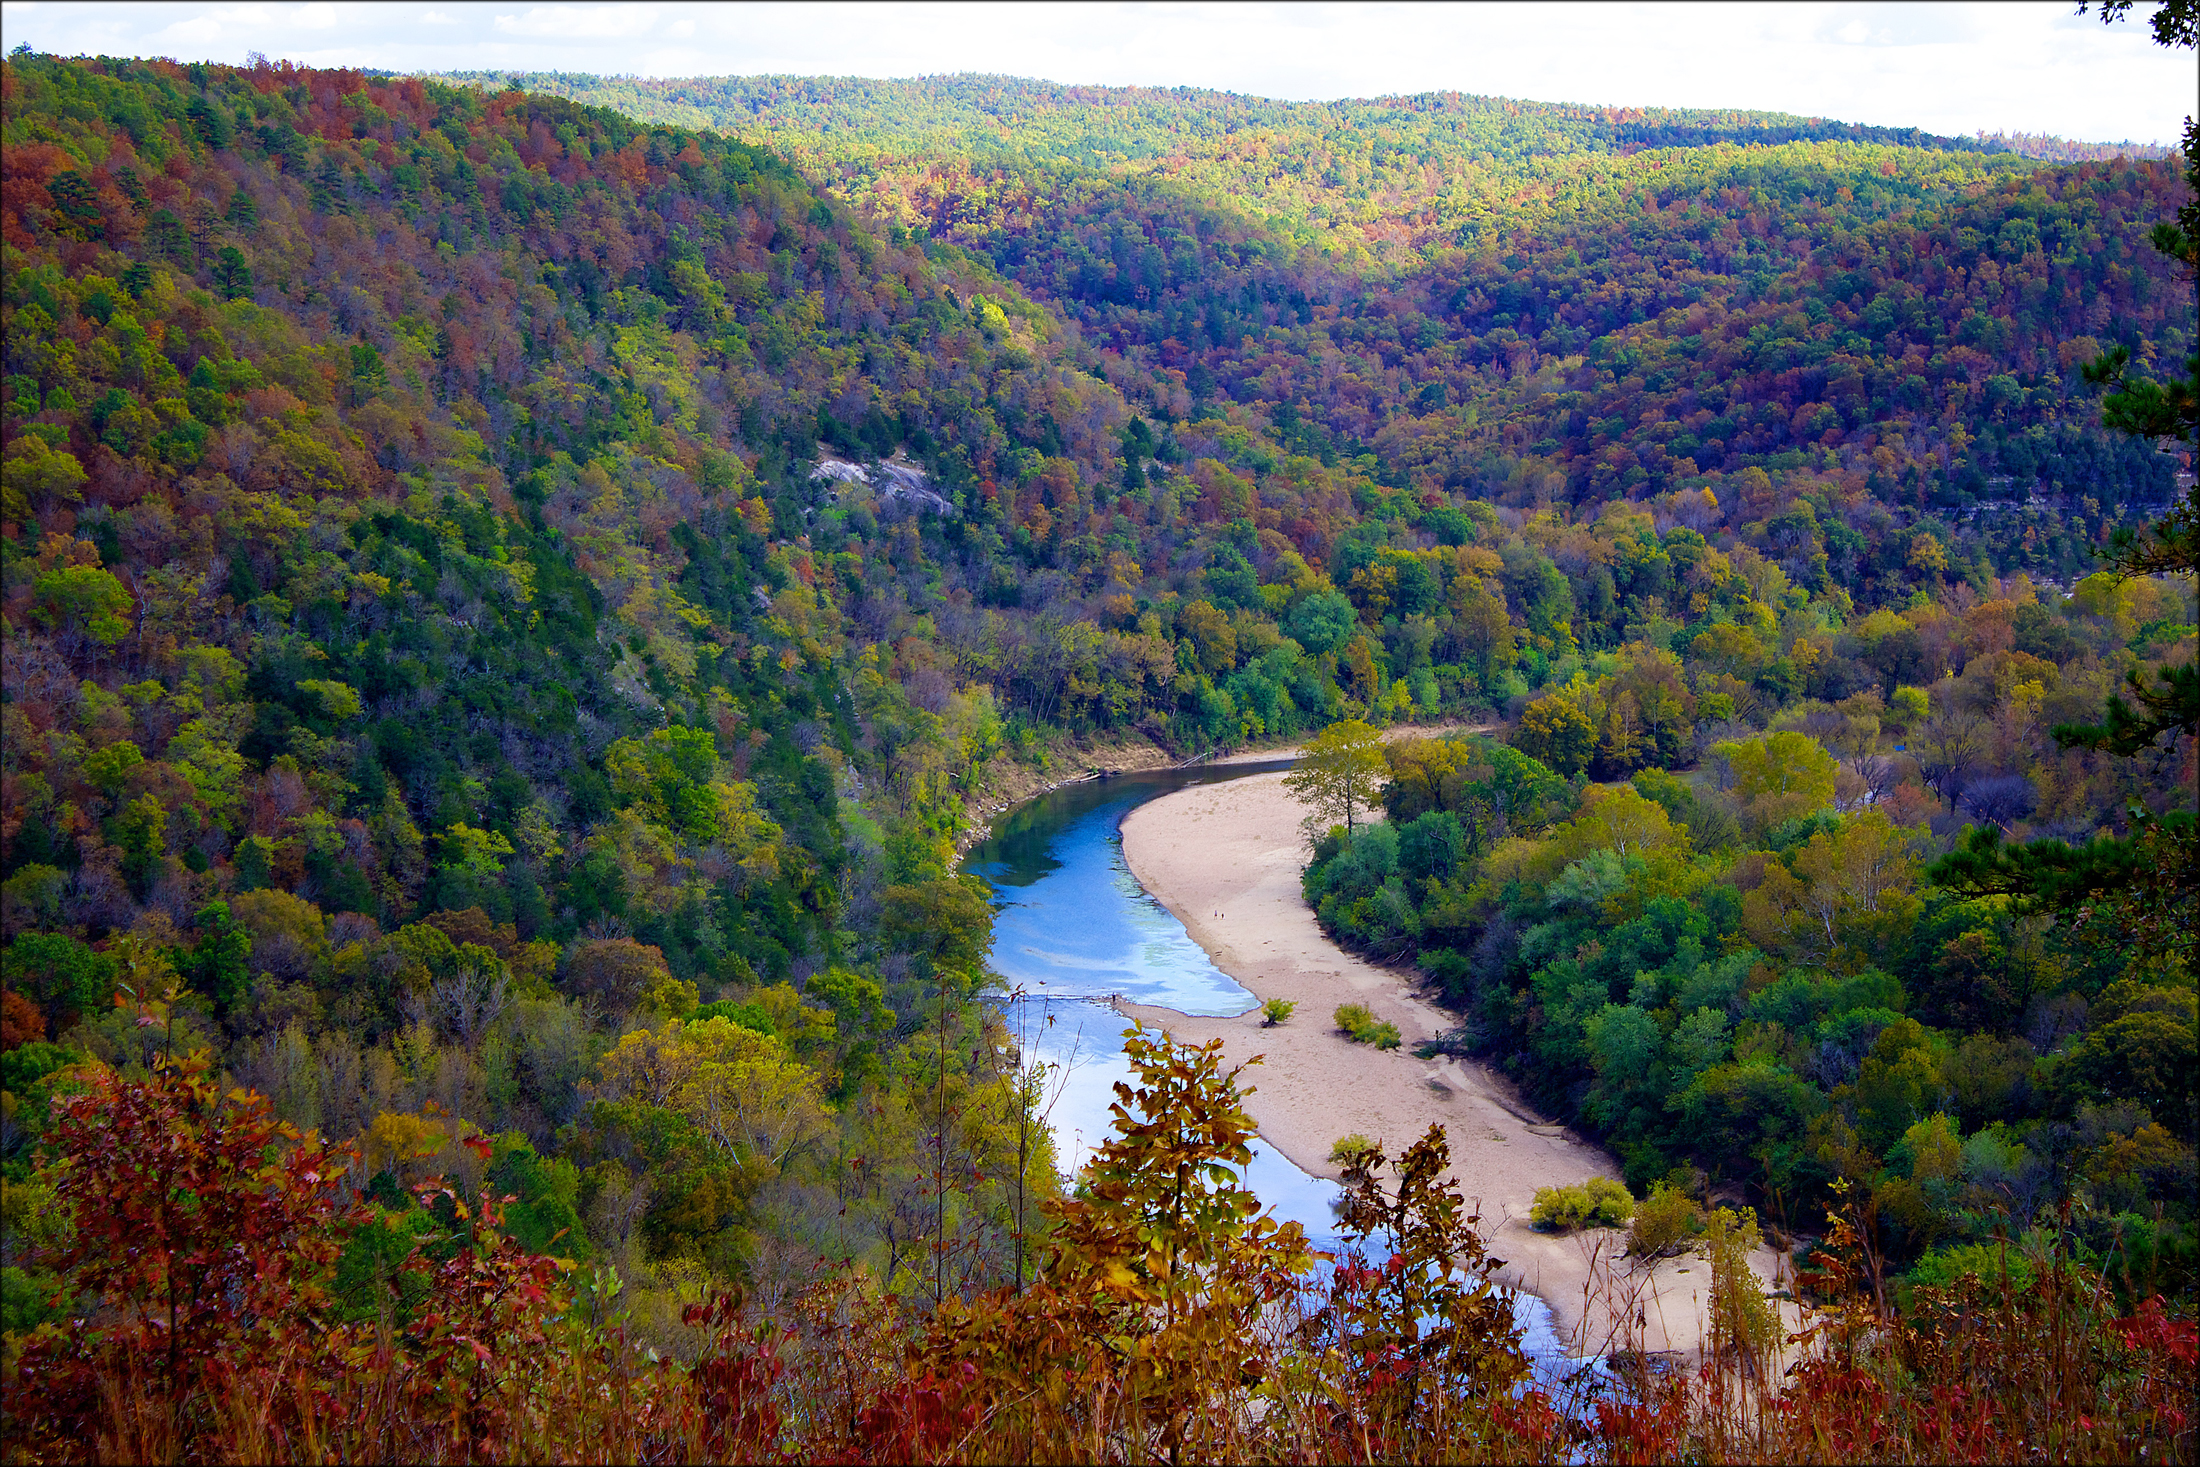 By Doug Wertman (Flickr: Overlooking The Buffalo River) [CC BY 2.0 (http://creativecommons.org/licenses/by/2.0)], via Wikimedia Commons